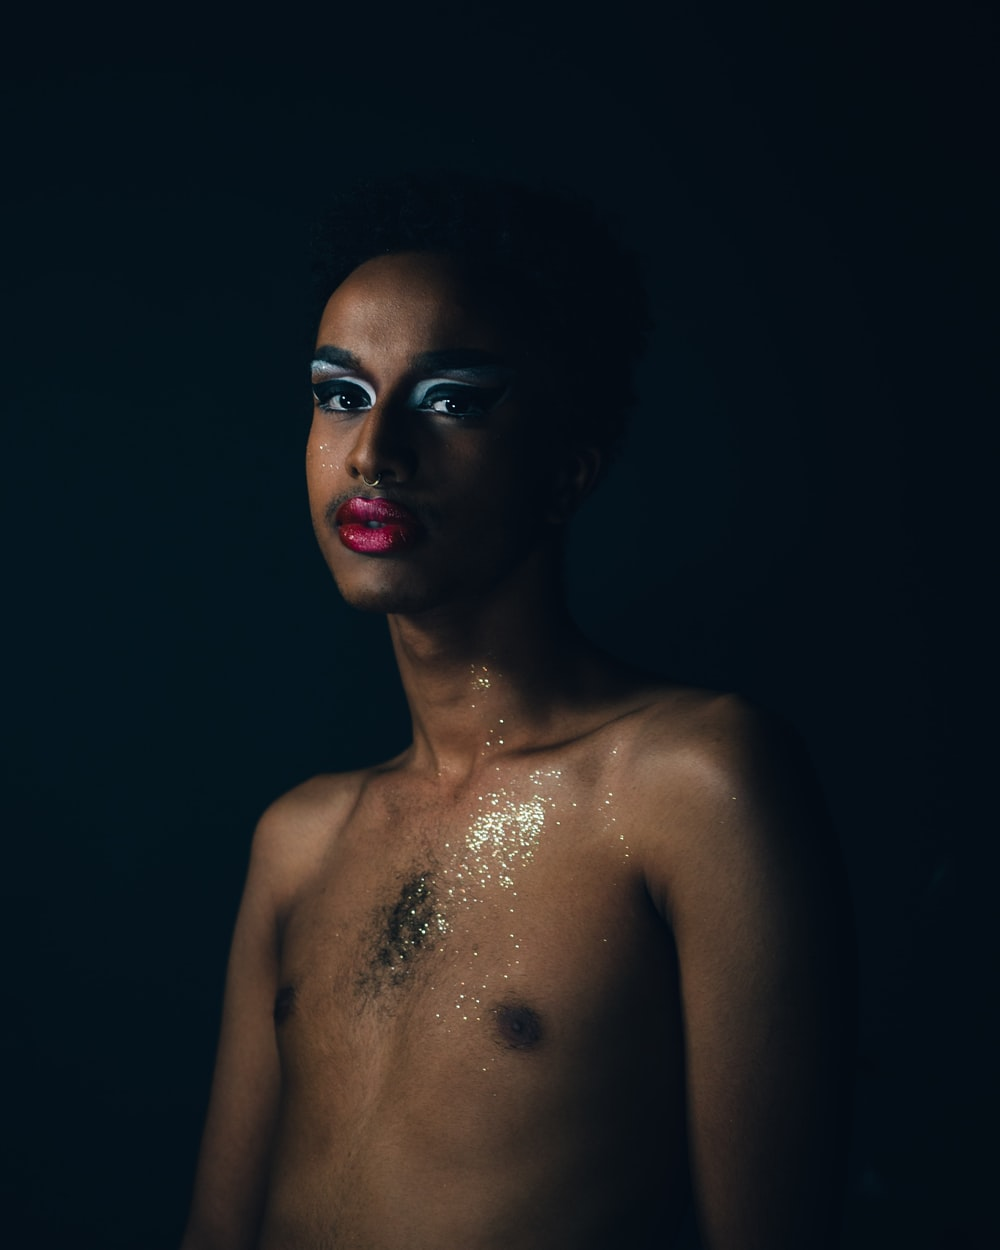 man with pink lipstick and highlighted eyeshadow inside dim lighted room